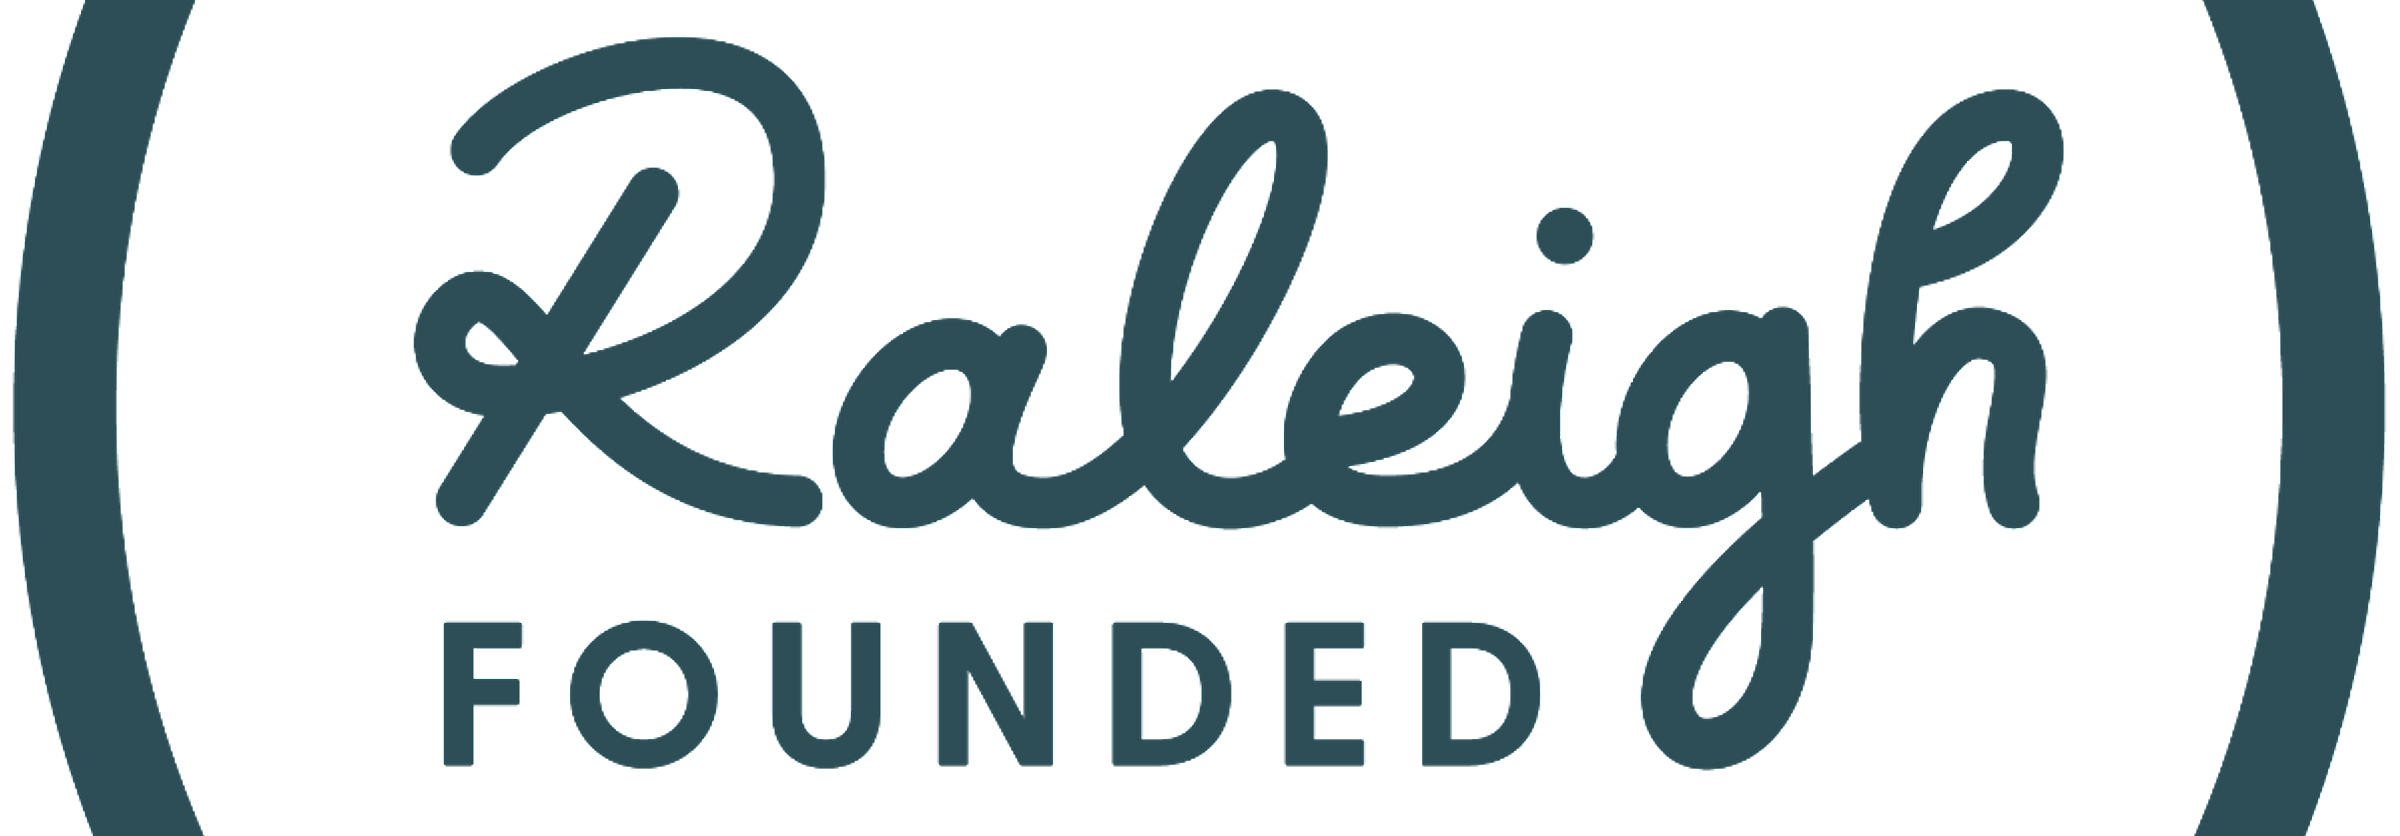 Raleigh Founded logo